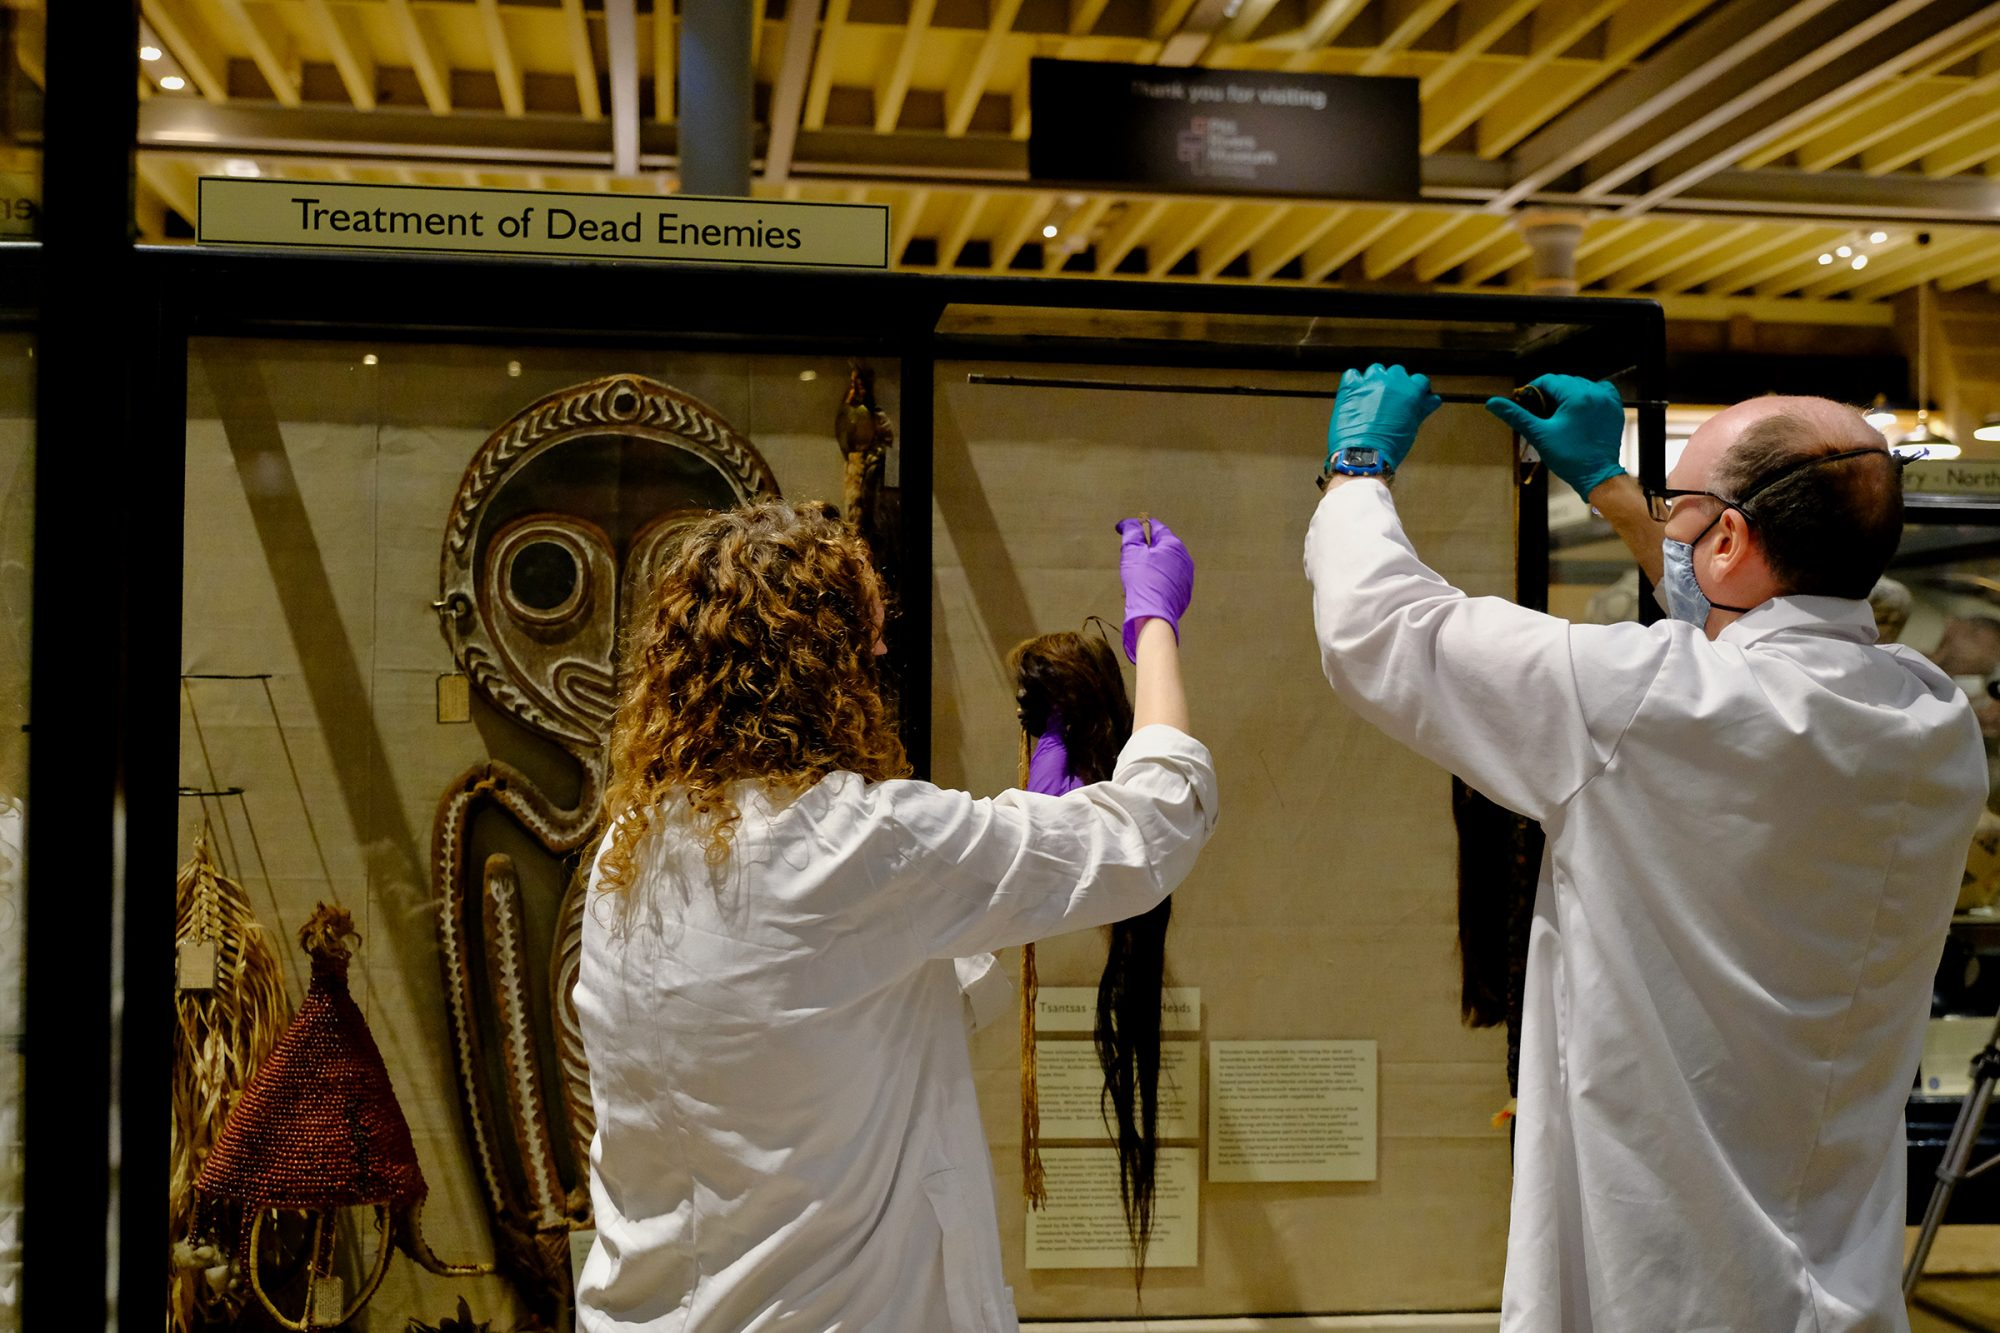 Pitt Rivers Museum reopening reveals critical changes to displays as part of decolonisation process